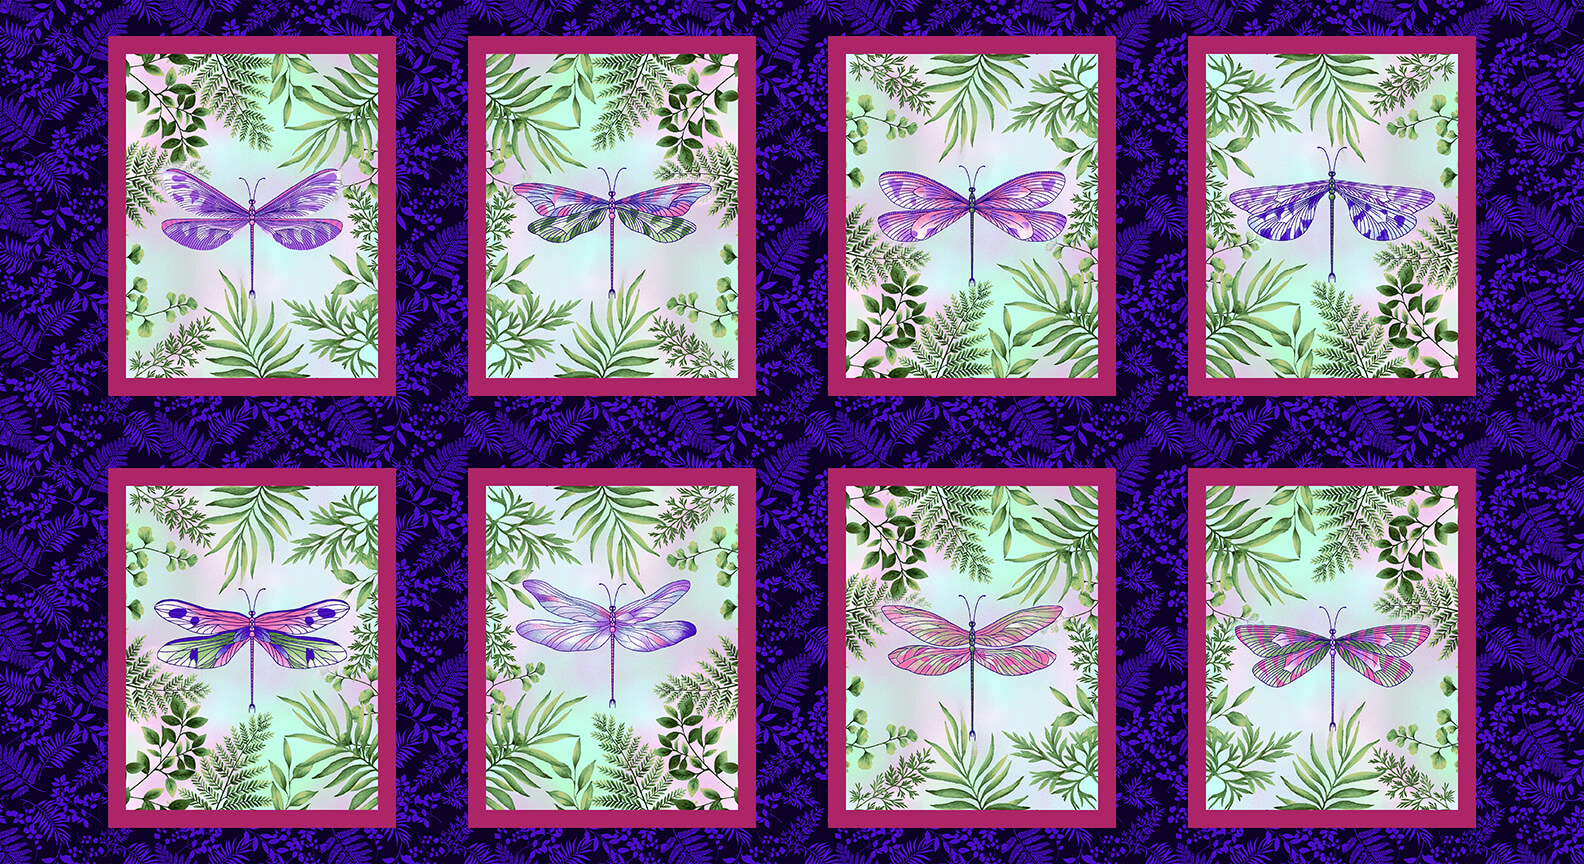 Dragonfly Garden Panel - 8 Blocks of Dragonflies - by Color Principle for Henry Glass Fabrics